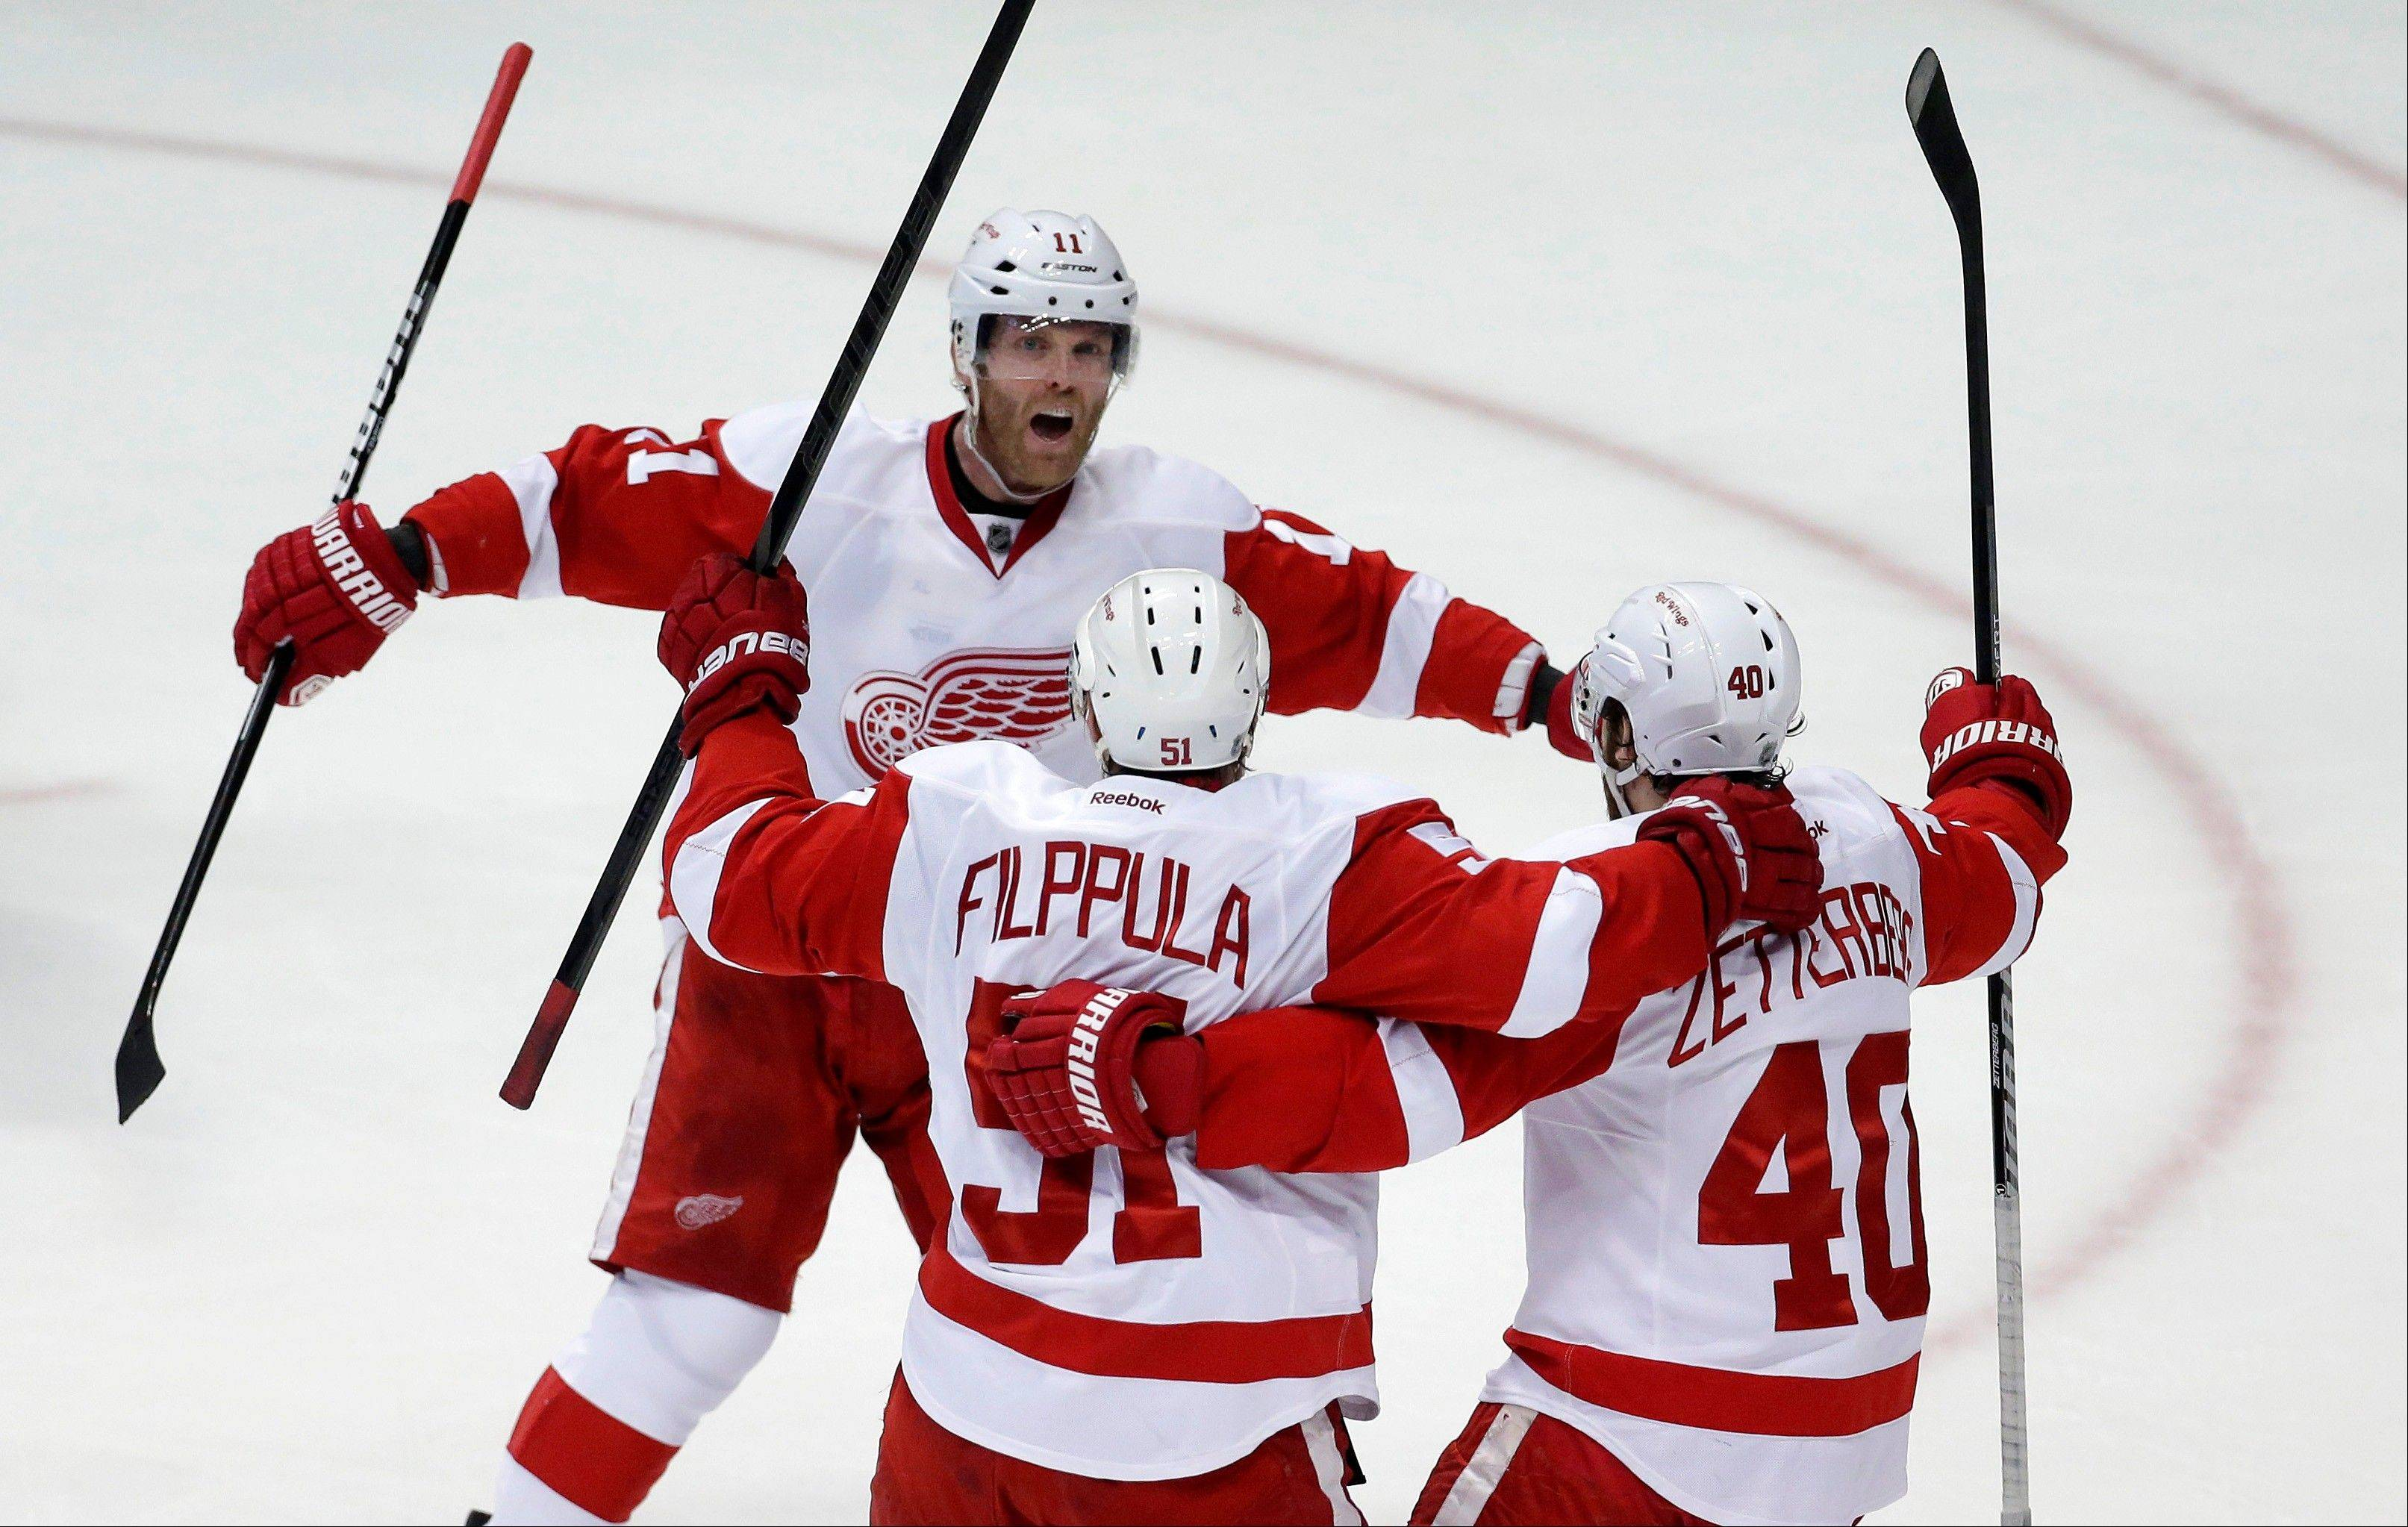 Detroit Red Wings forward Valtteri Filppula, center, celebrates his goal Sudnay with right wing Daniel Cleary, left, and center Henrik Zetterberg during the second period in Game 7 of their first-round NHL hockey Stanley Cup playoff series against the Anaheim Ducks.